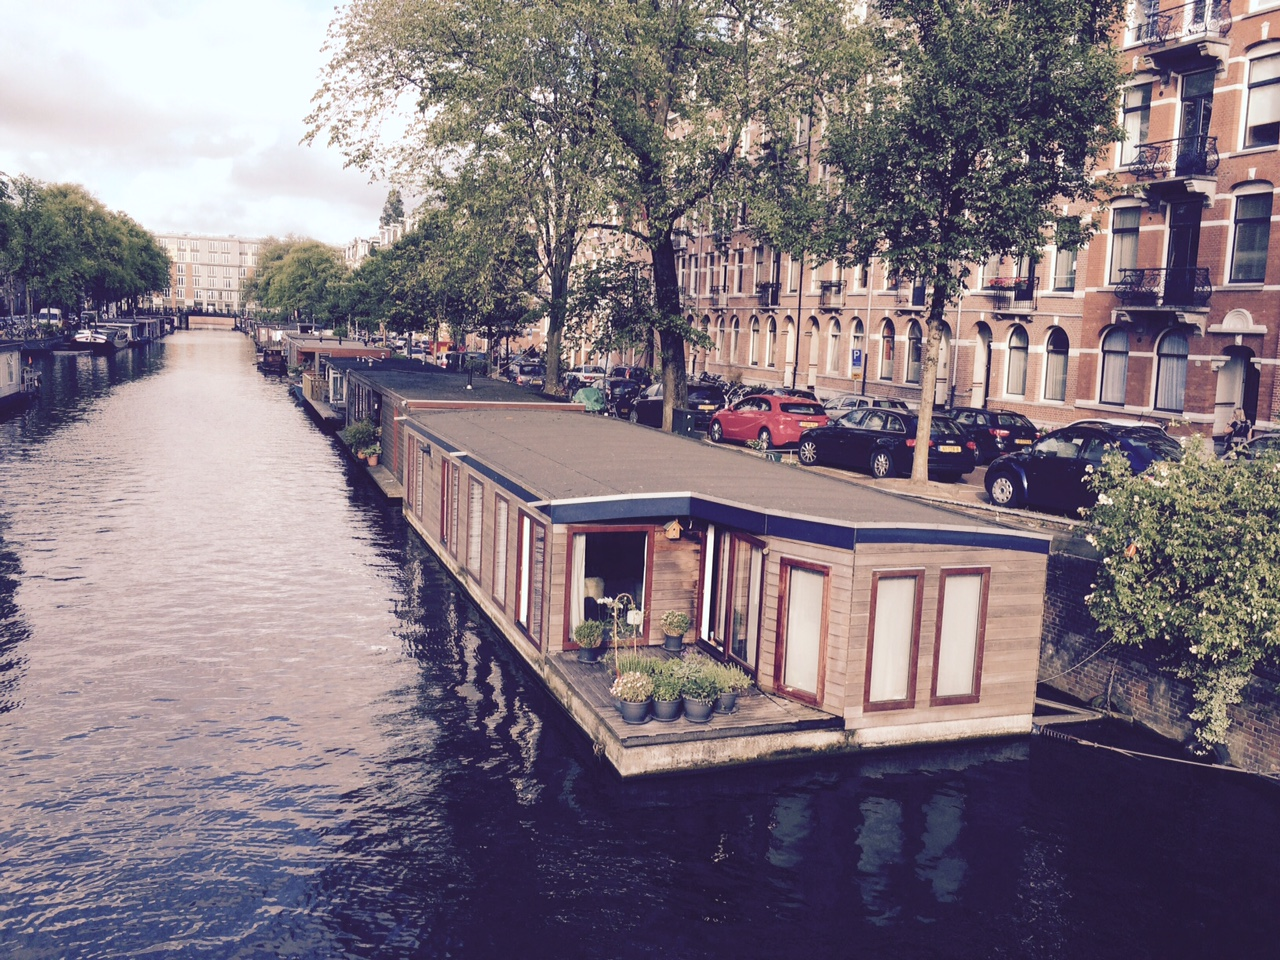 Fabulous houseboats along one of the canals.